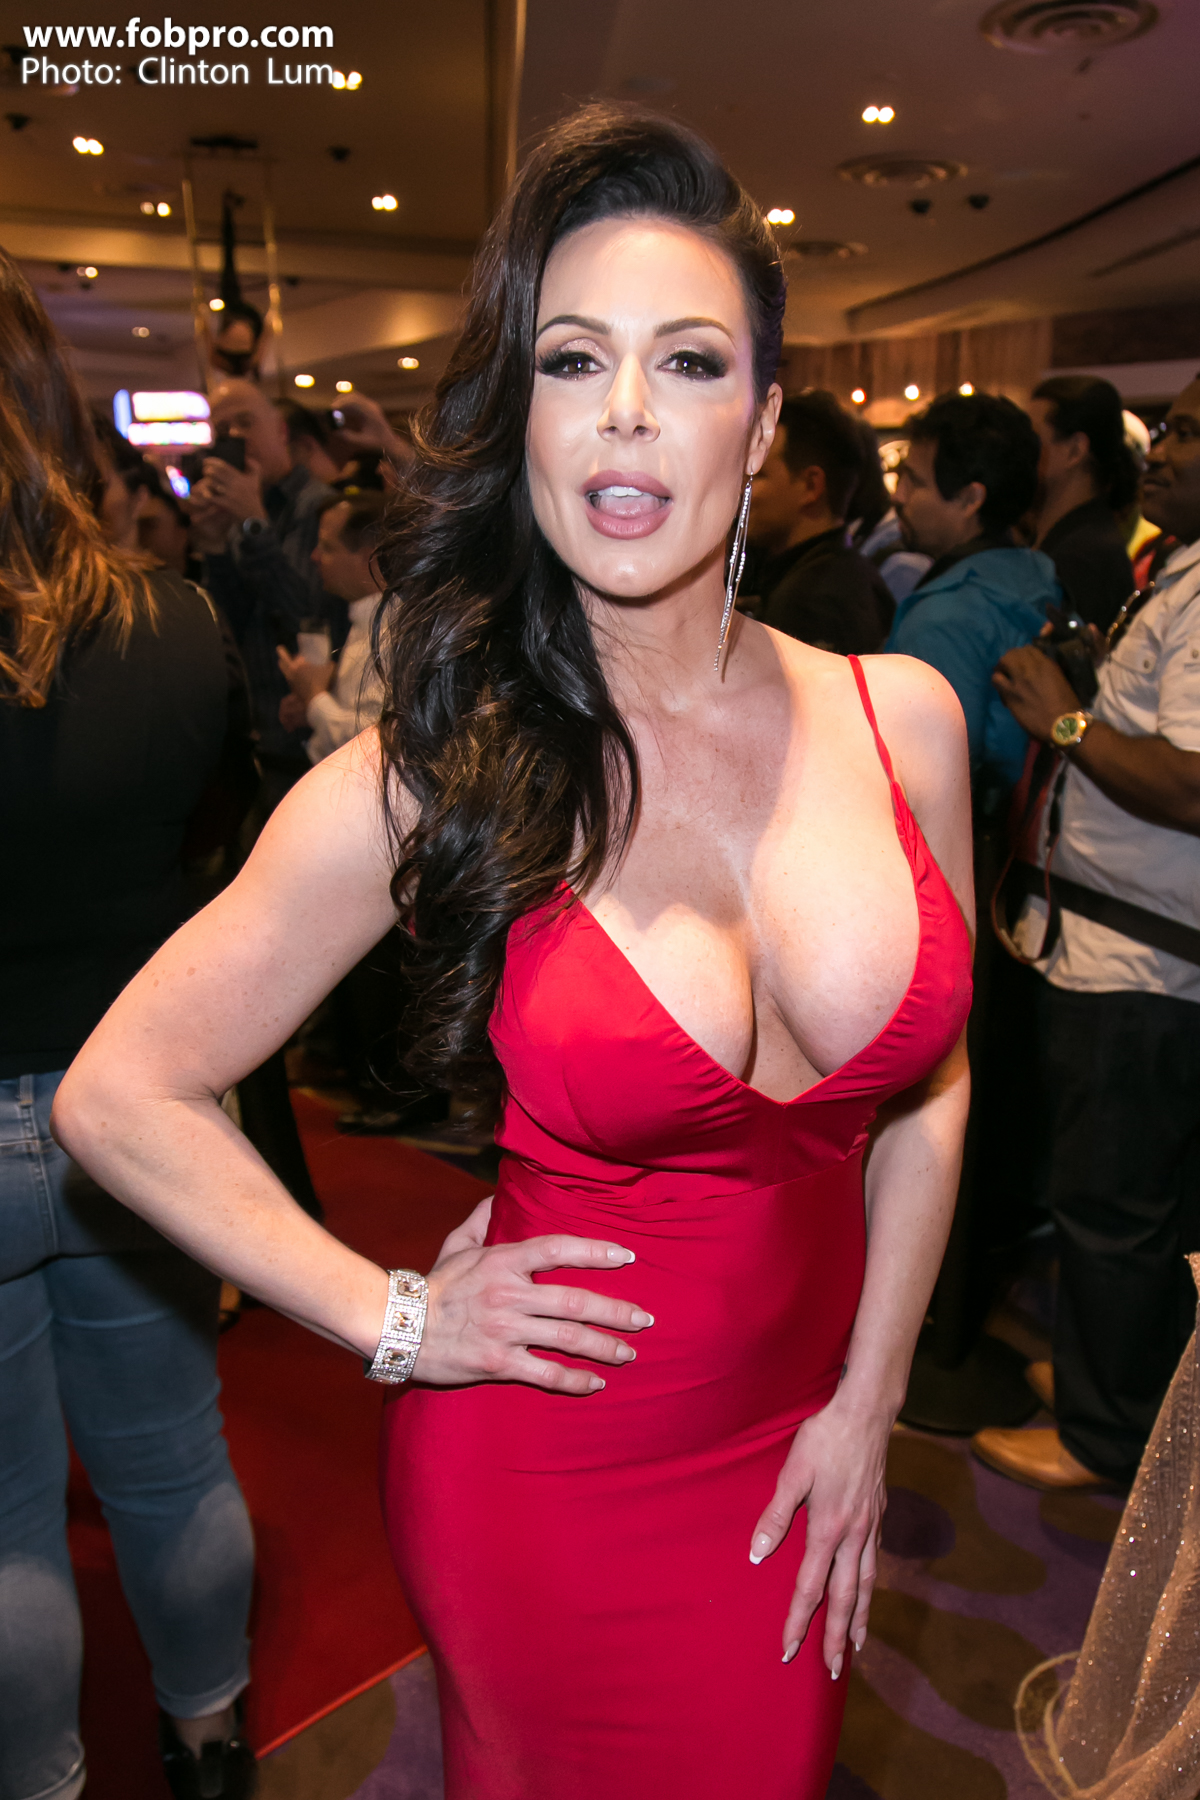 Kendra Lust Avn Awards 2017 Fob Productions